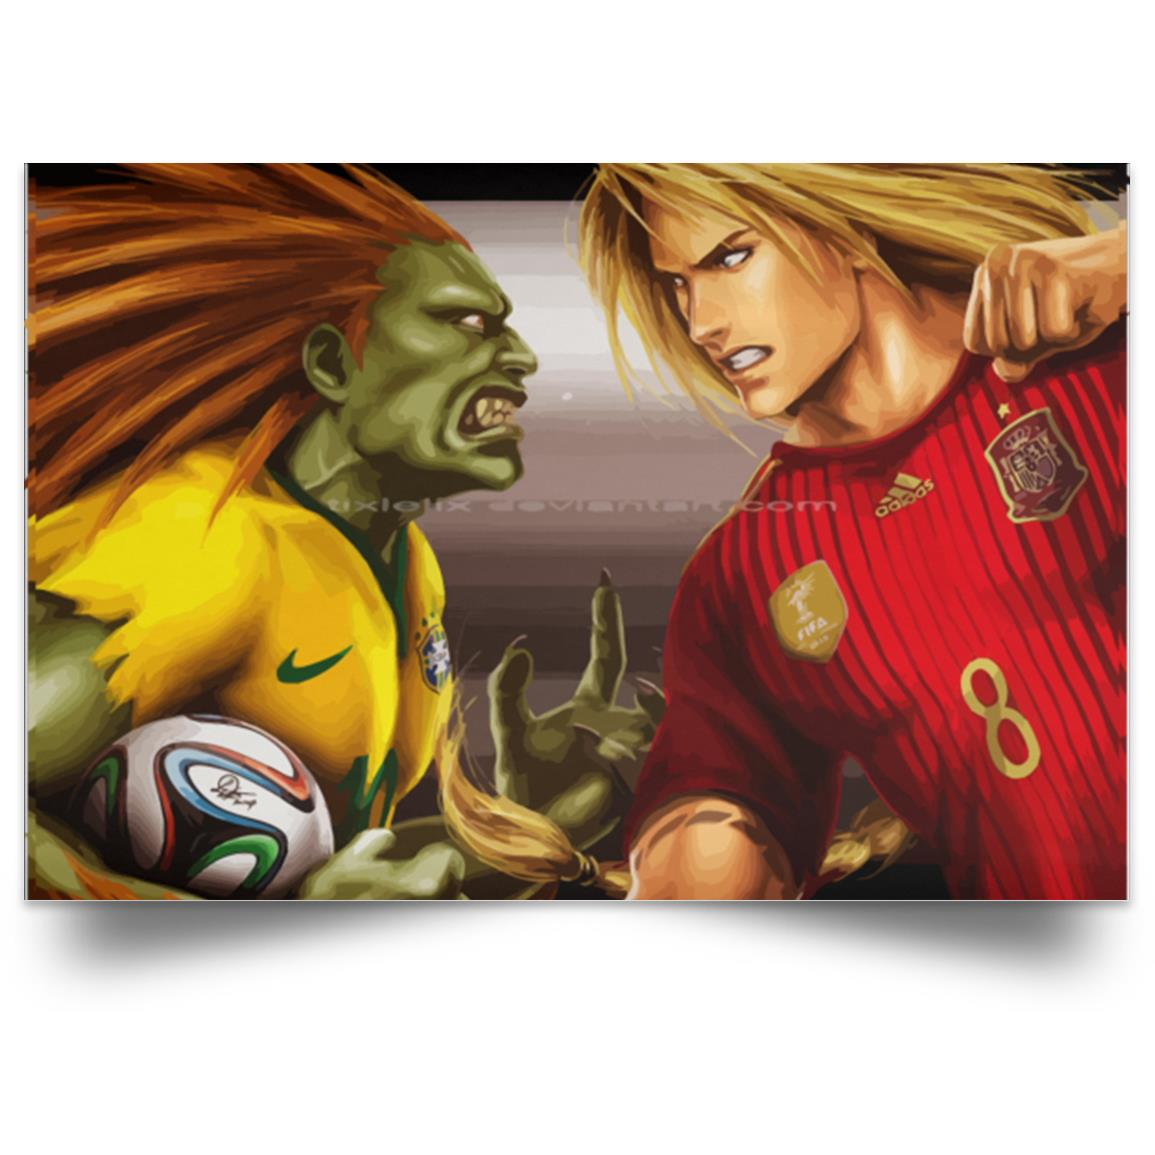 STREET FIGHTER BLANKA VS KEN 1